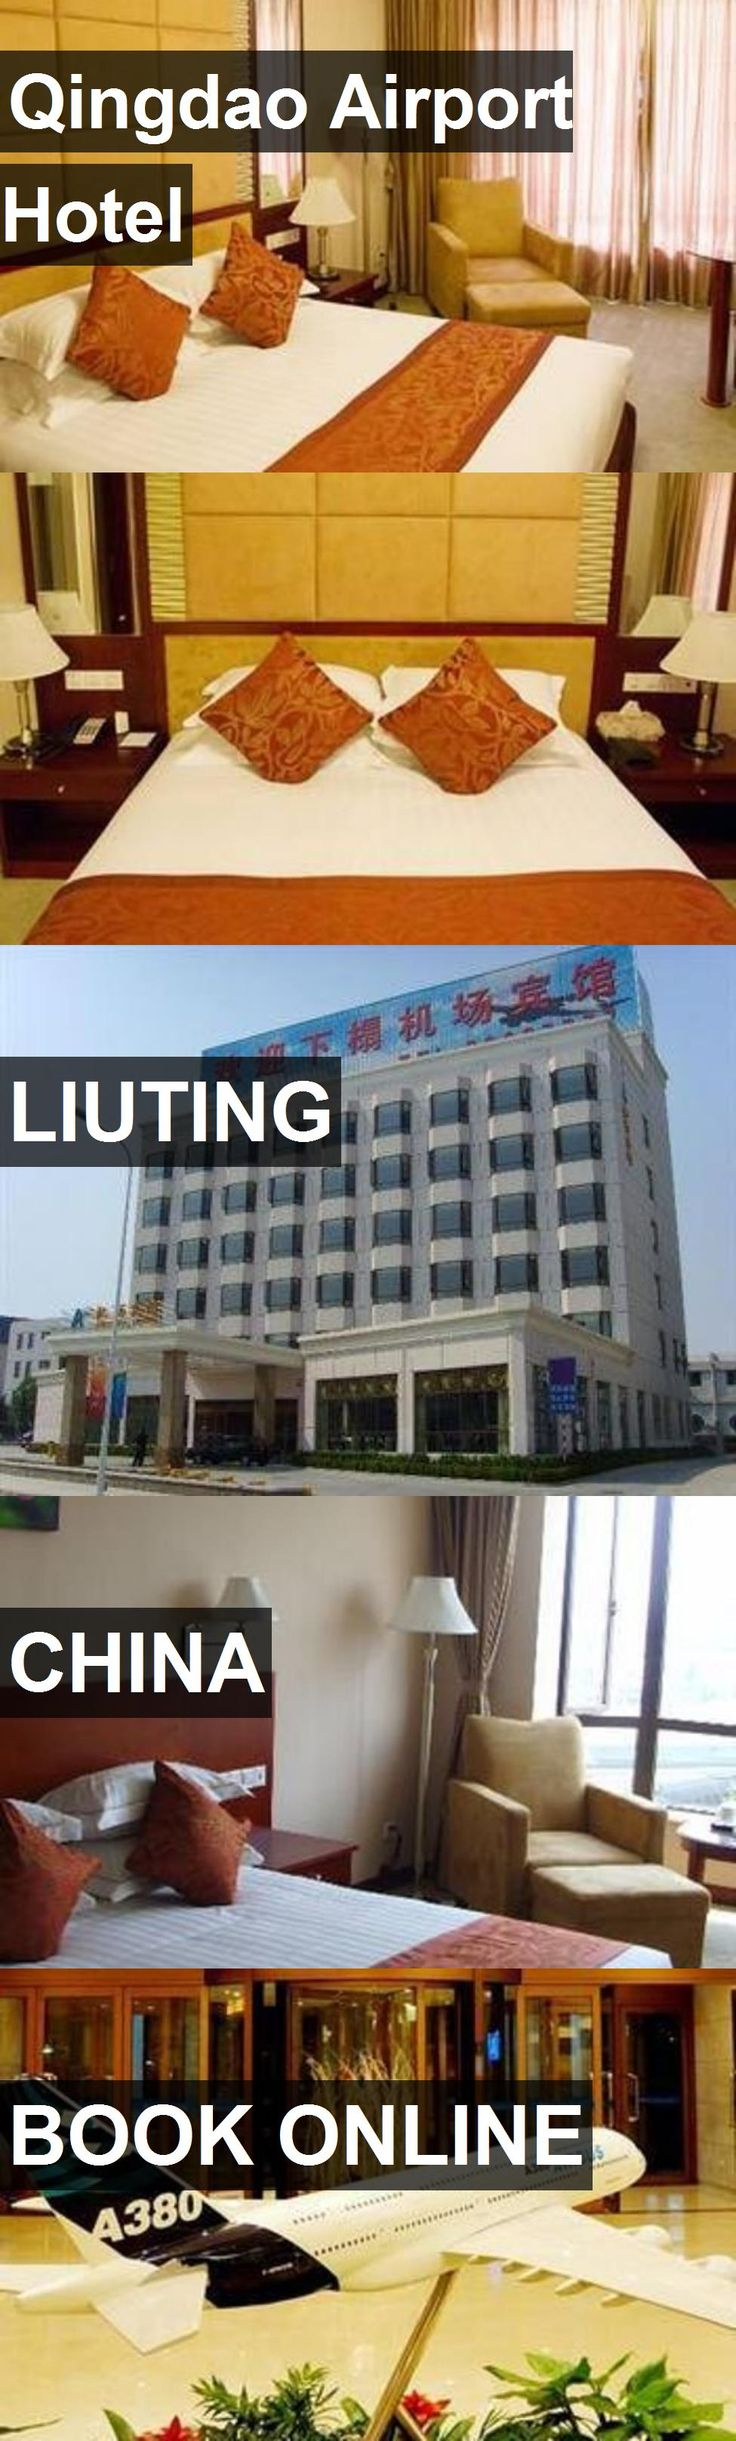 Qingdao Airport Hotel in Liuting, China. For more information, photos, reviews and best prices please follow the link. #China #Liuting #travel #vacation #hotel